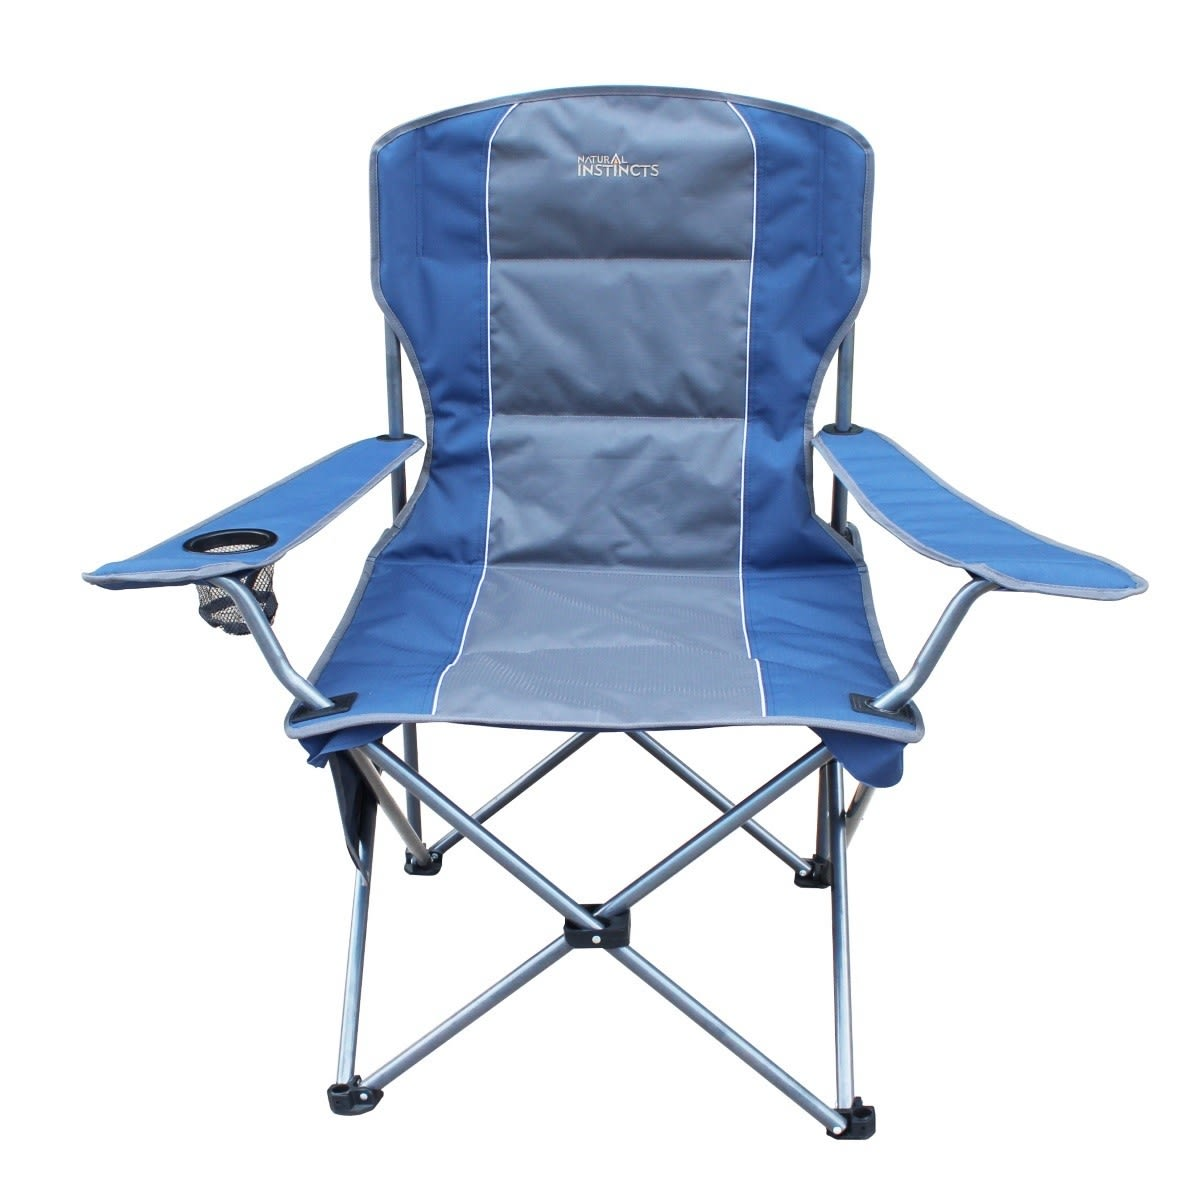 Natural Instincts Adventure Chair with Side Pocket and Cup Holder